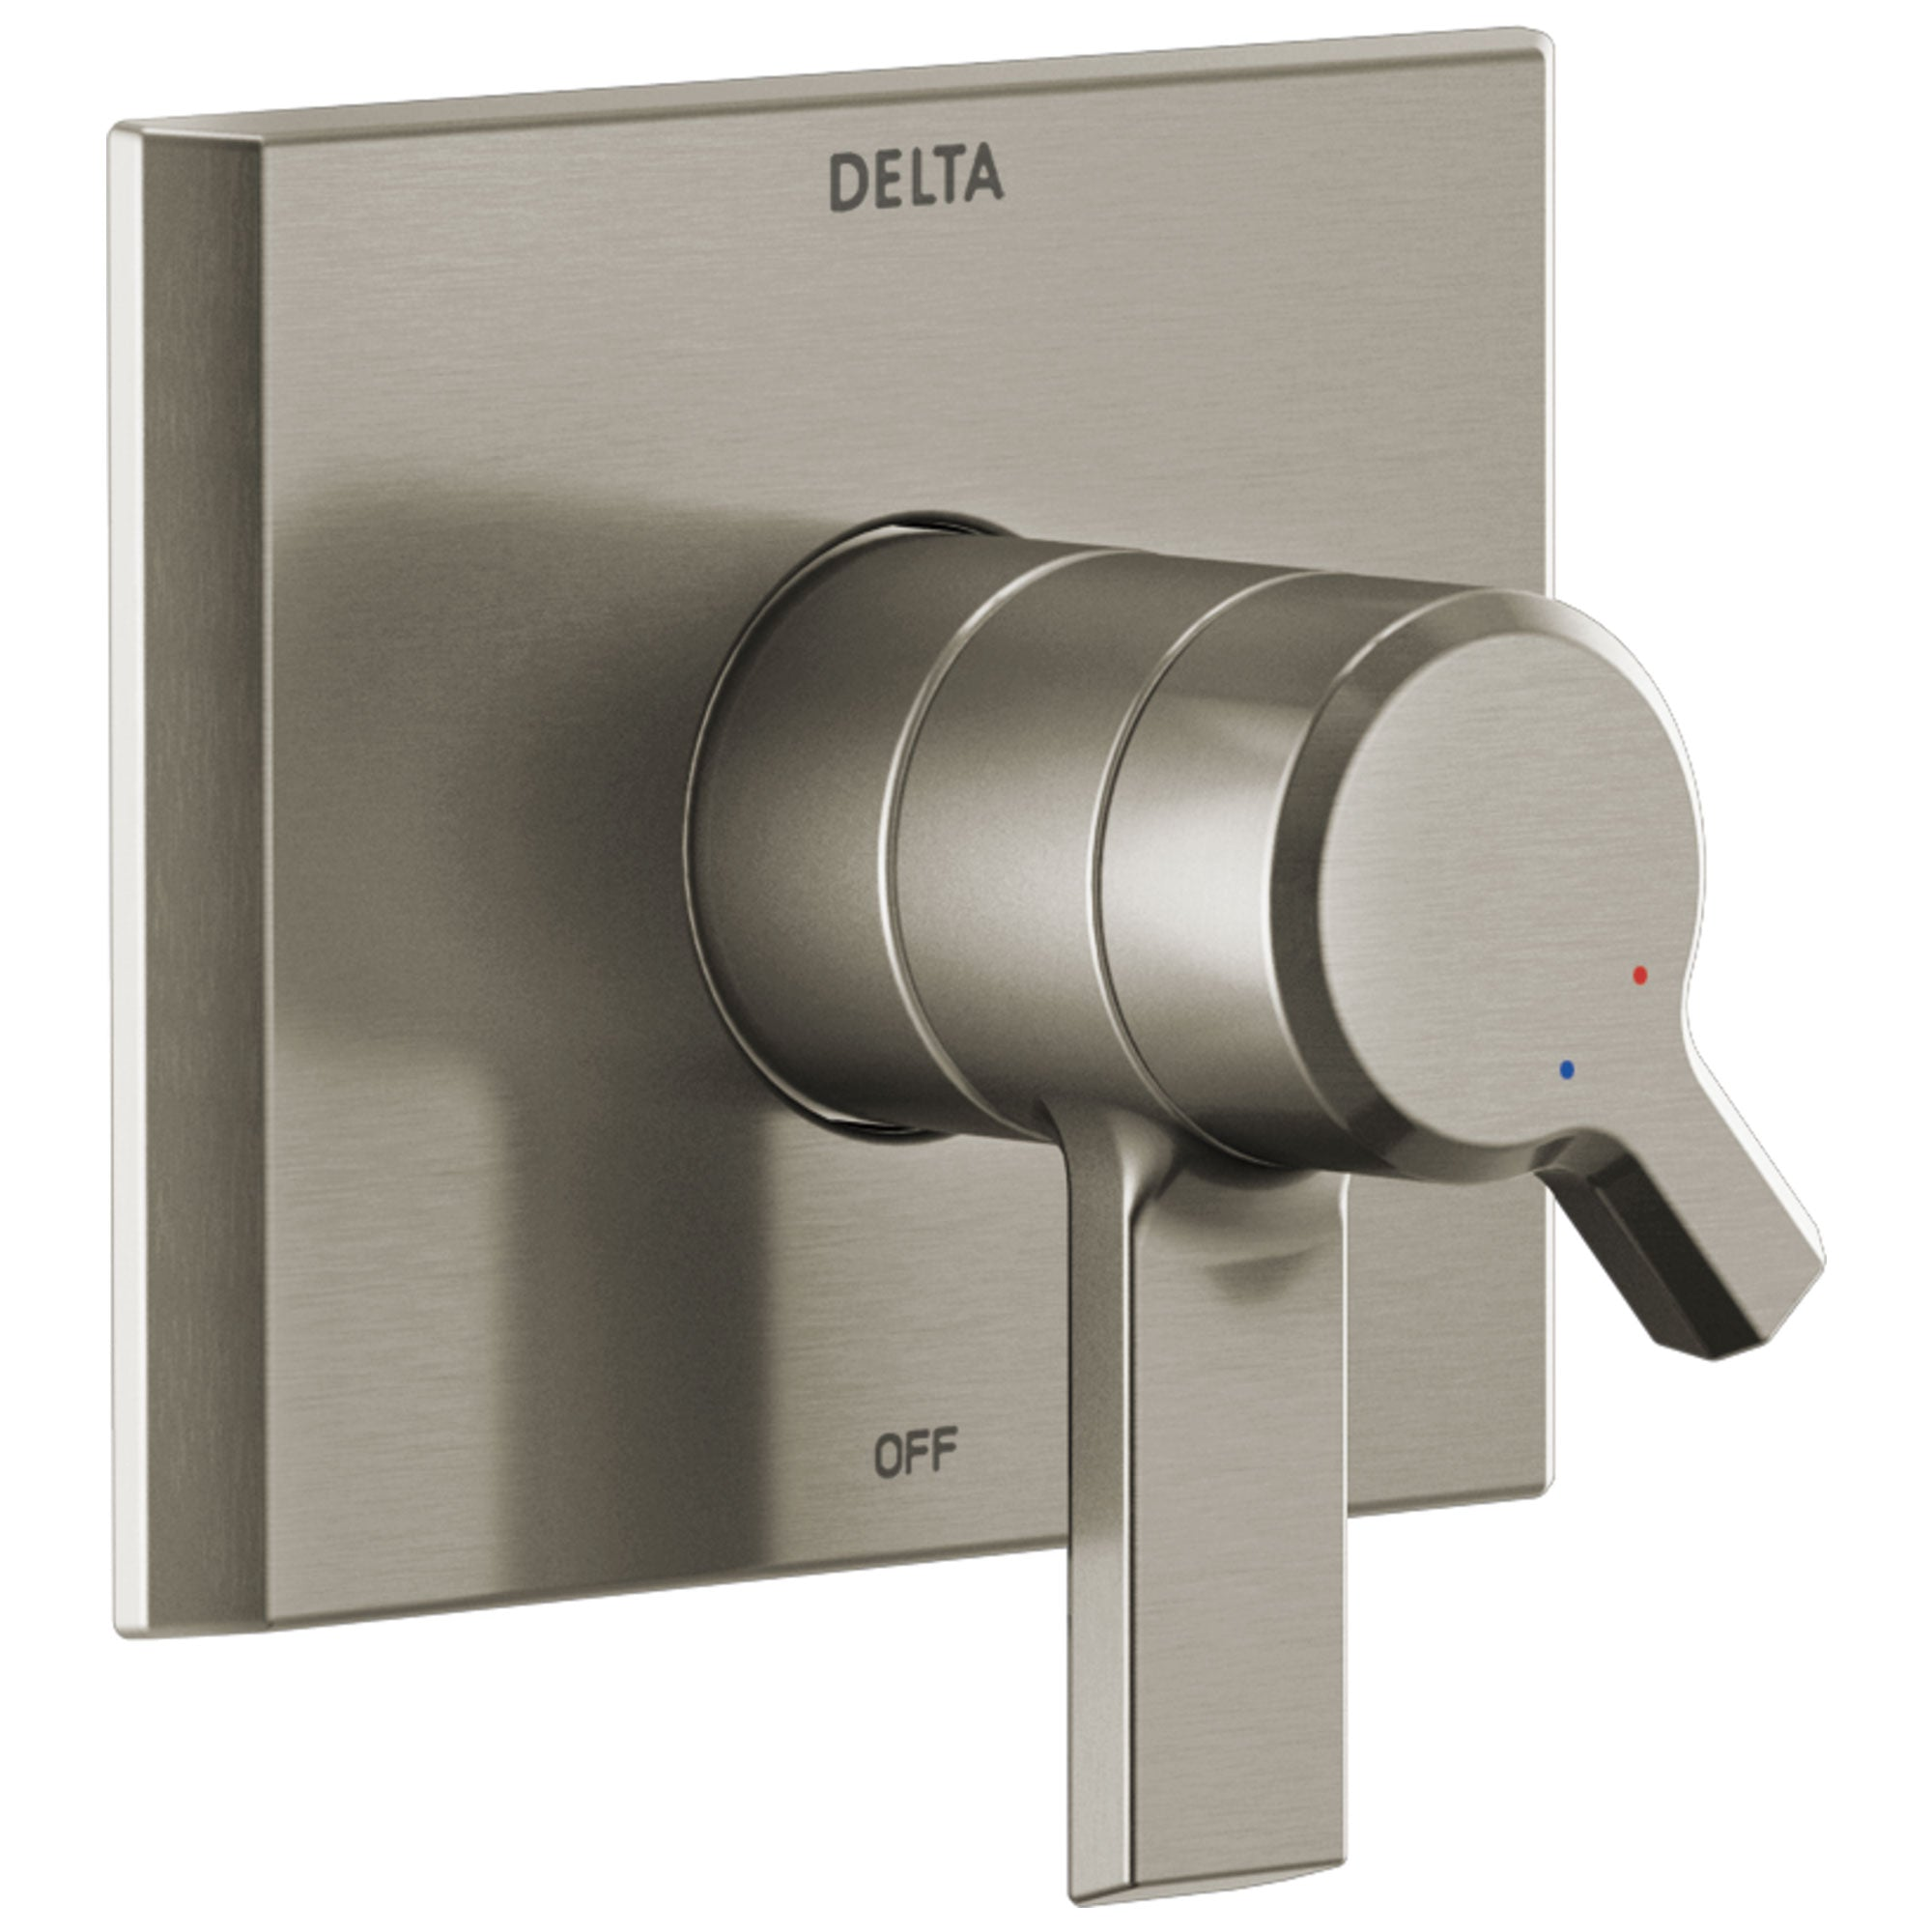 Delta Pivotal Modern Stainless Steel Finish Monitor 17 Series Shower Faucet Control Includes Handles, Cartridge, and Valve with Stops D3392V